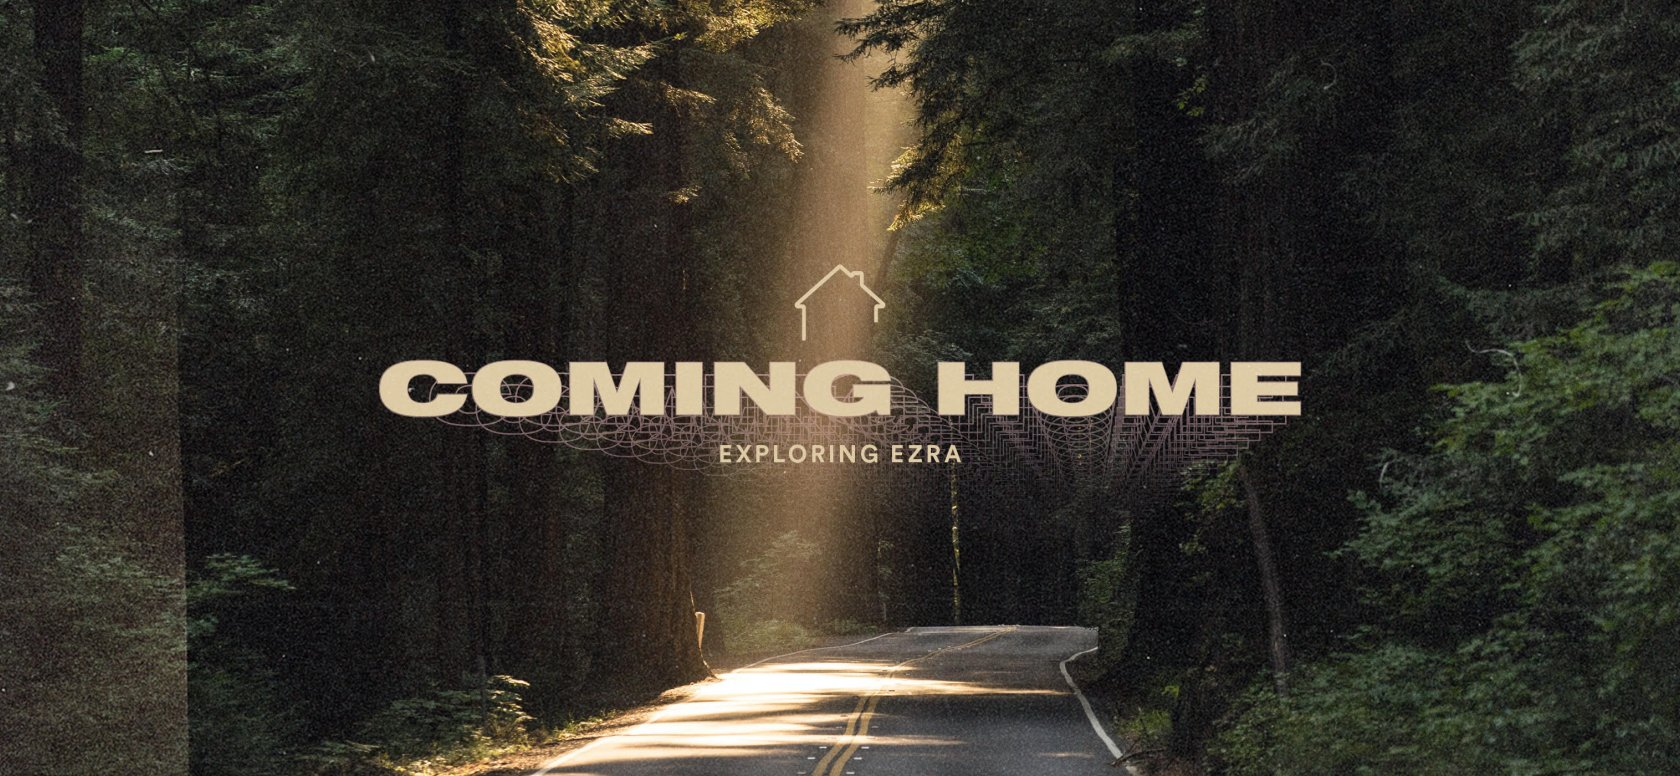 Coming-Home-web-banner-1680x776-1